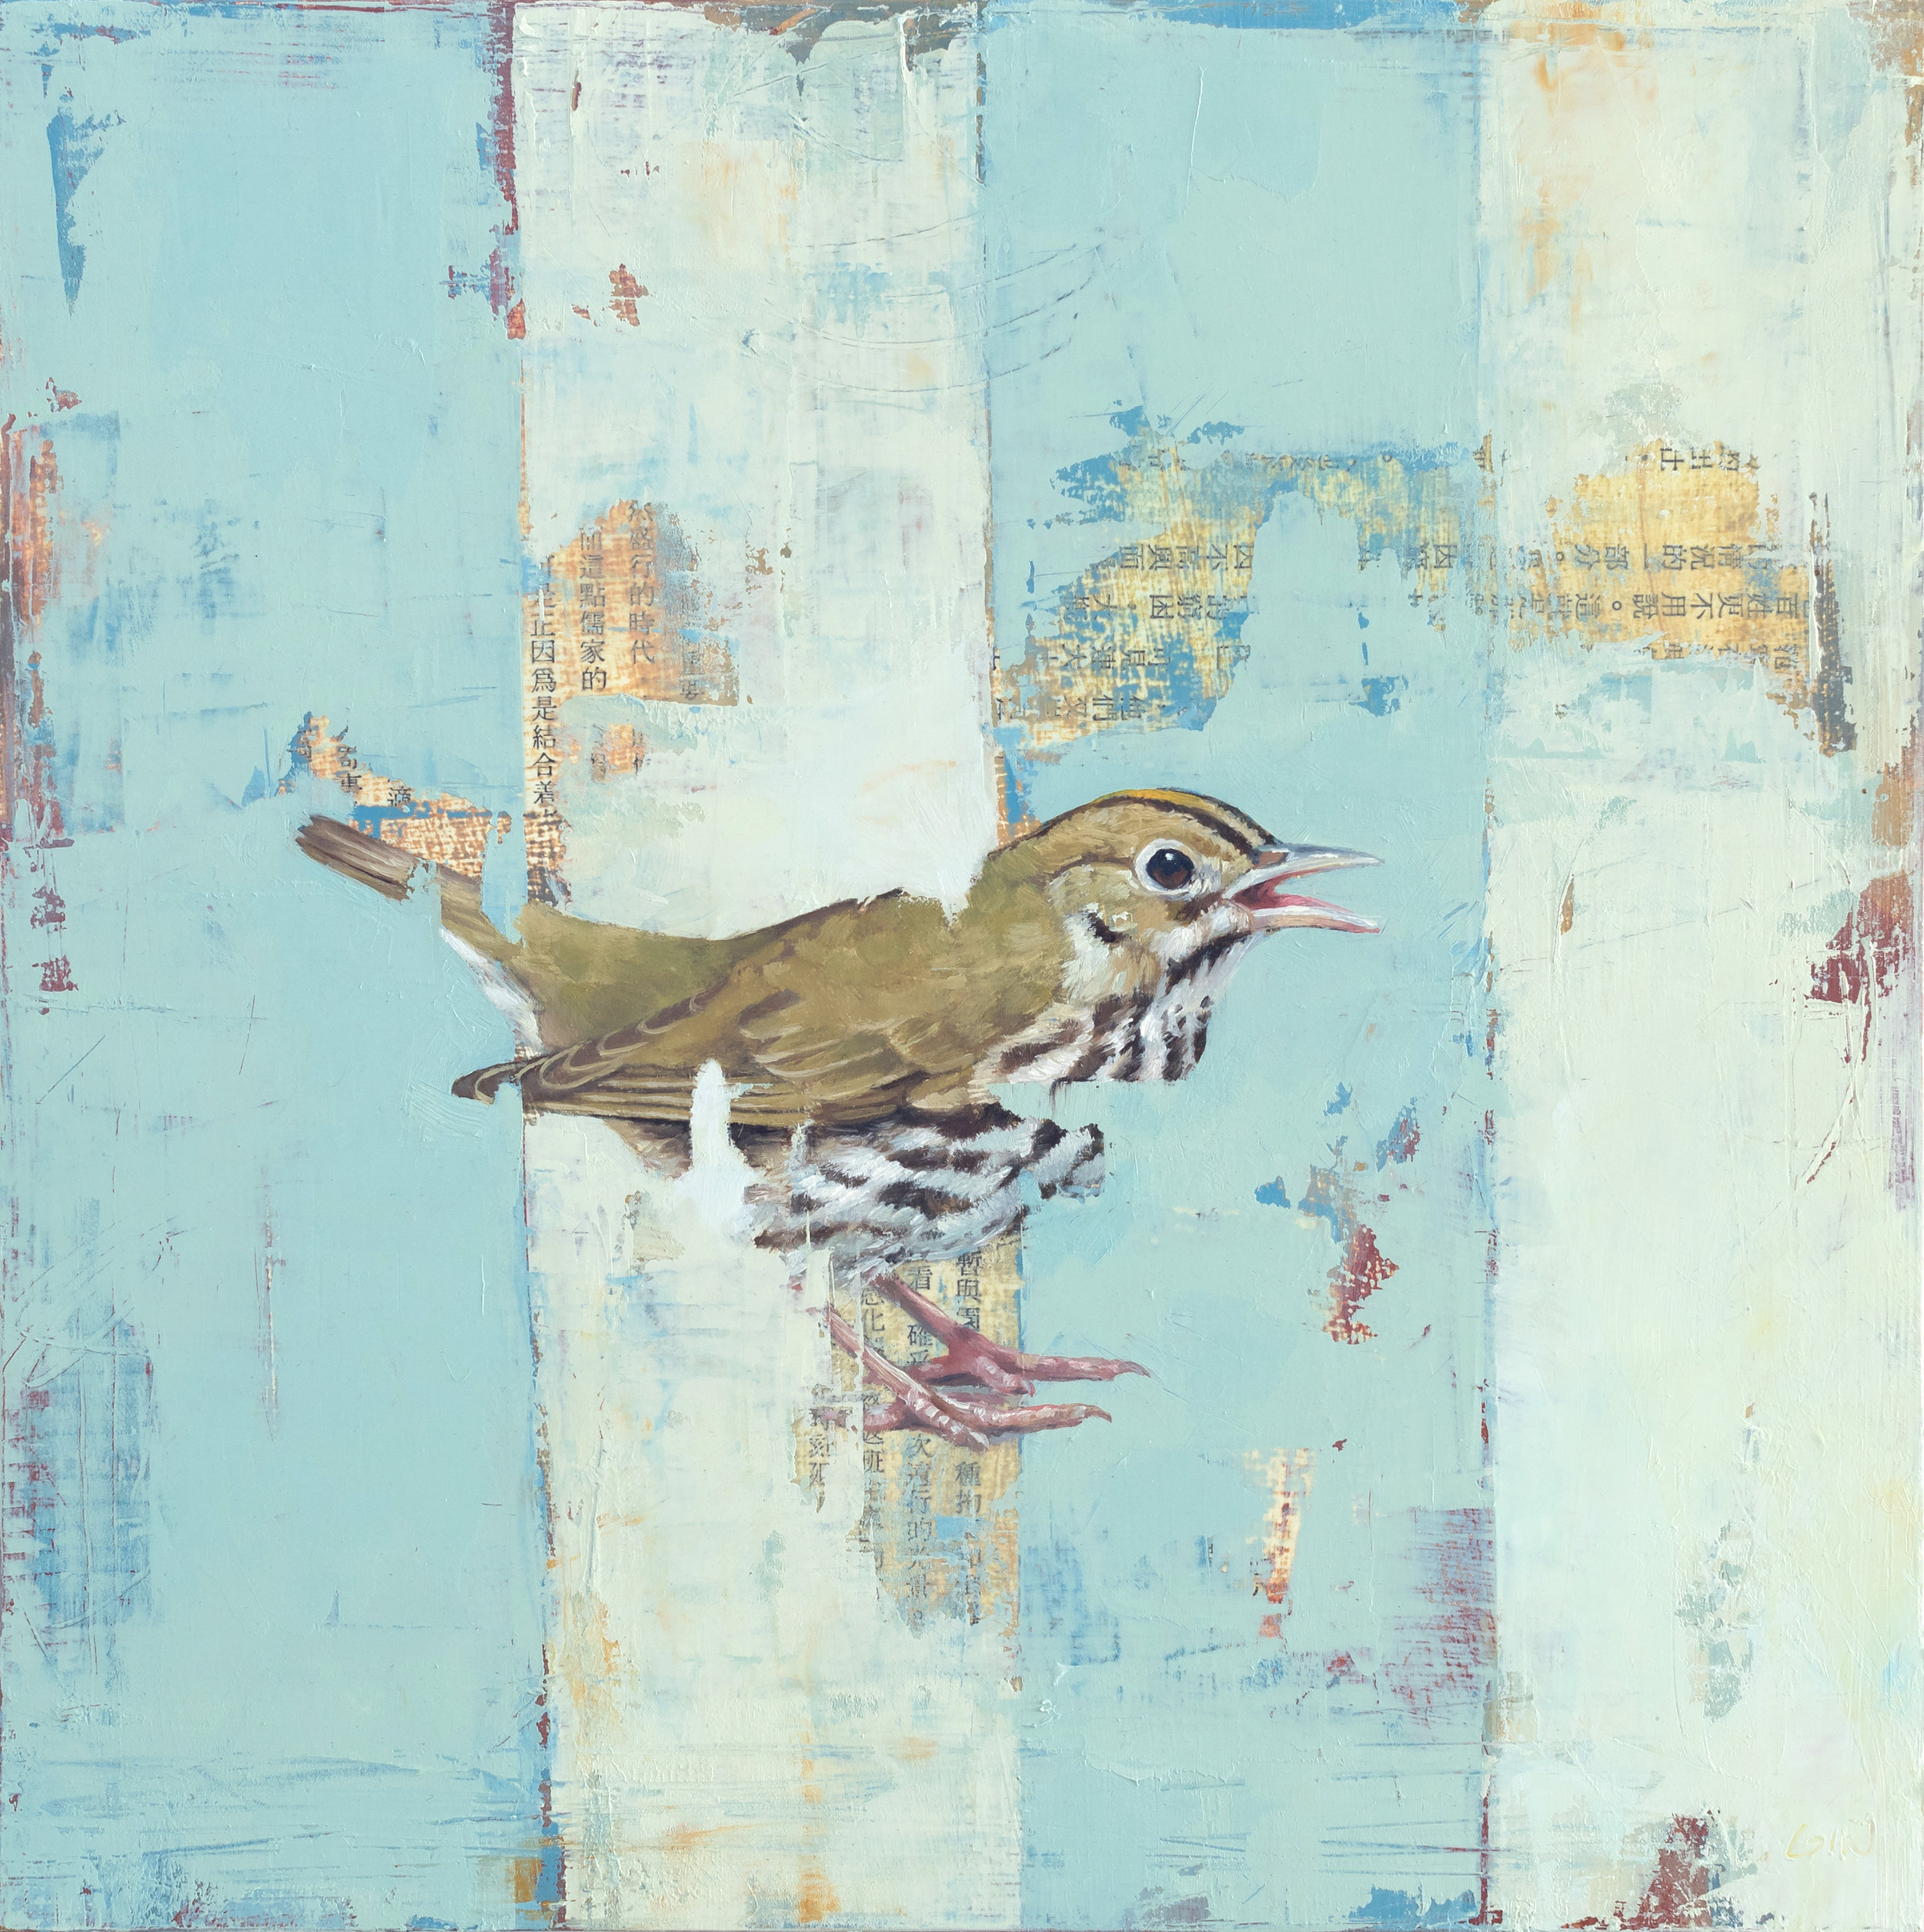 Ovenbird  2019 oil and collage on panel 10 x 10 inches  available at  Water Street Gallery